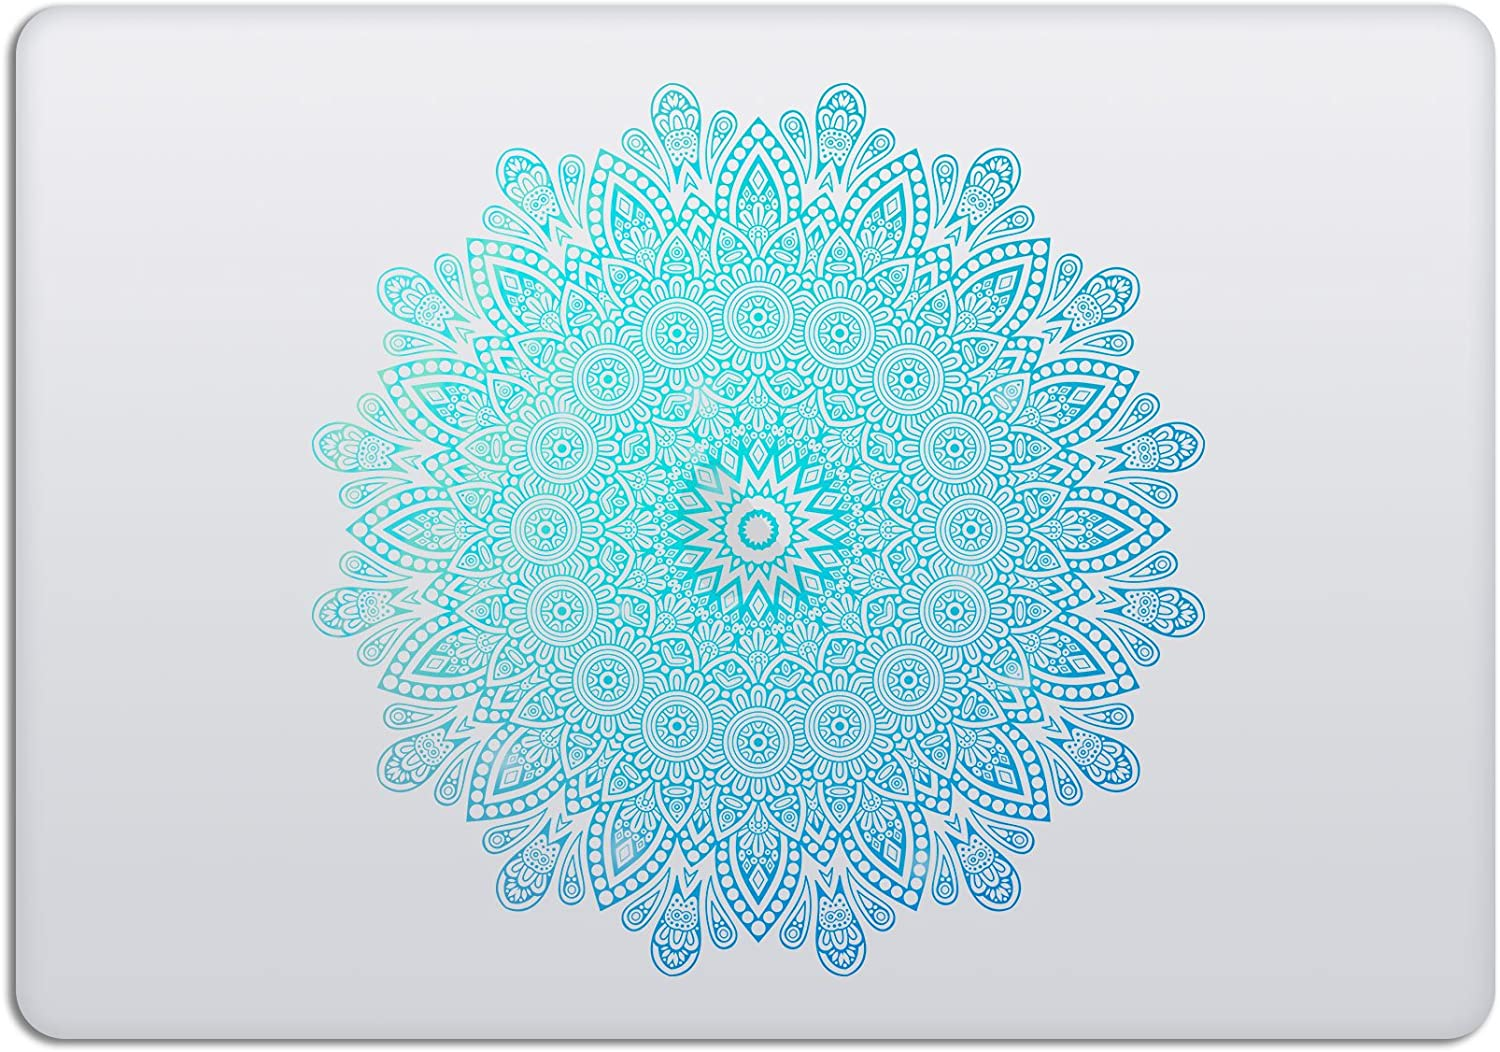 Laptop Stickers MacBook Decal - Removable Vinyl - Mandala Green Mint Decal Skin for Apple MacBook Air Pro 13 15 inch Mac Retina - Best Decorative Sticker by Artsybb